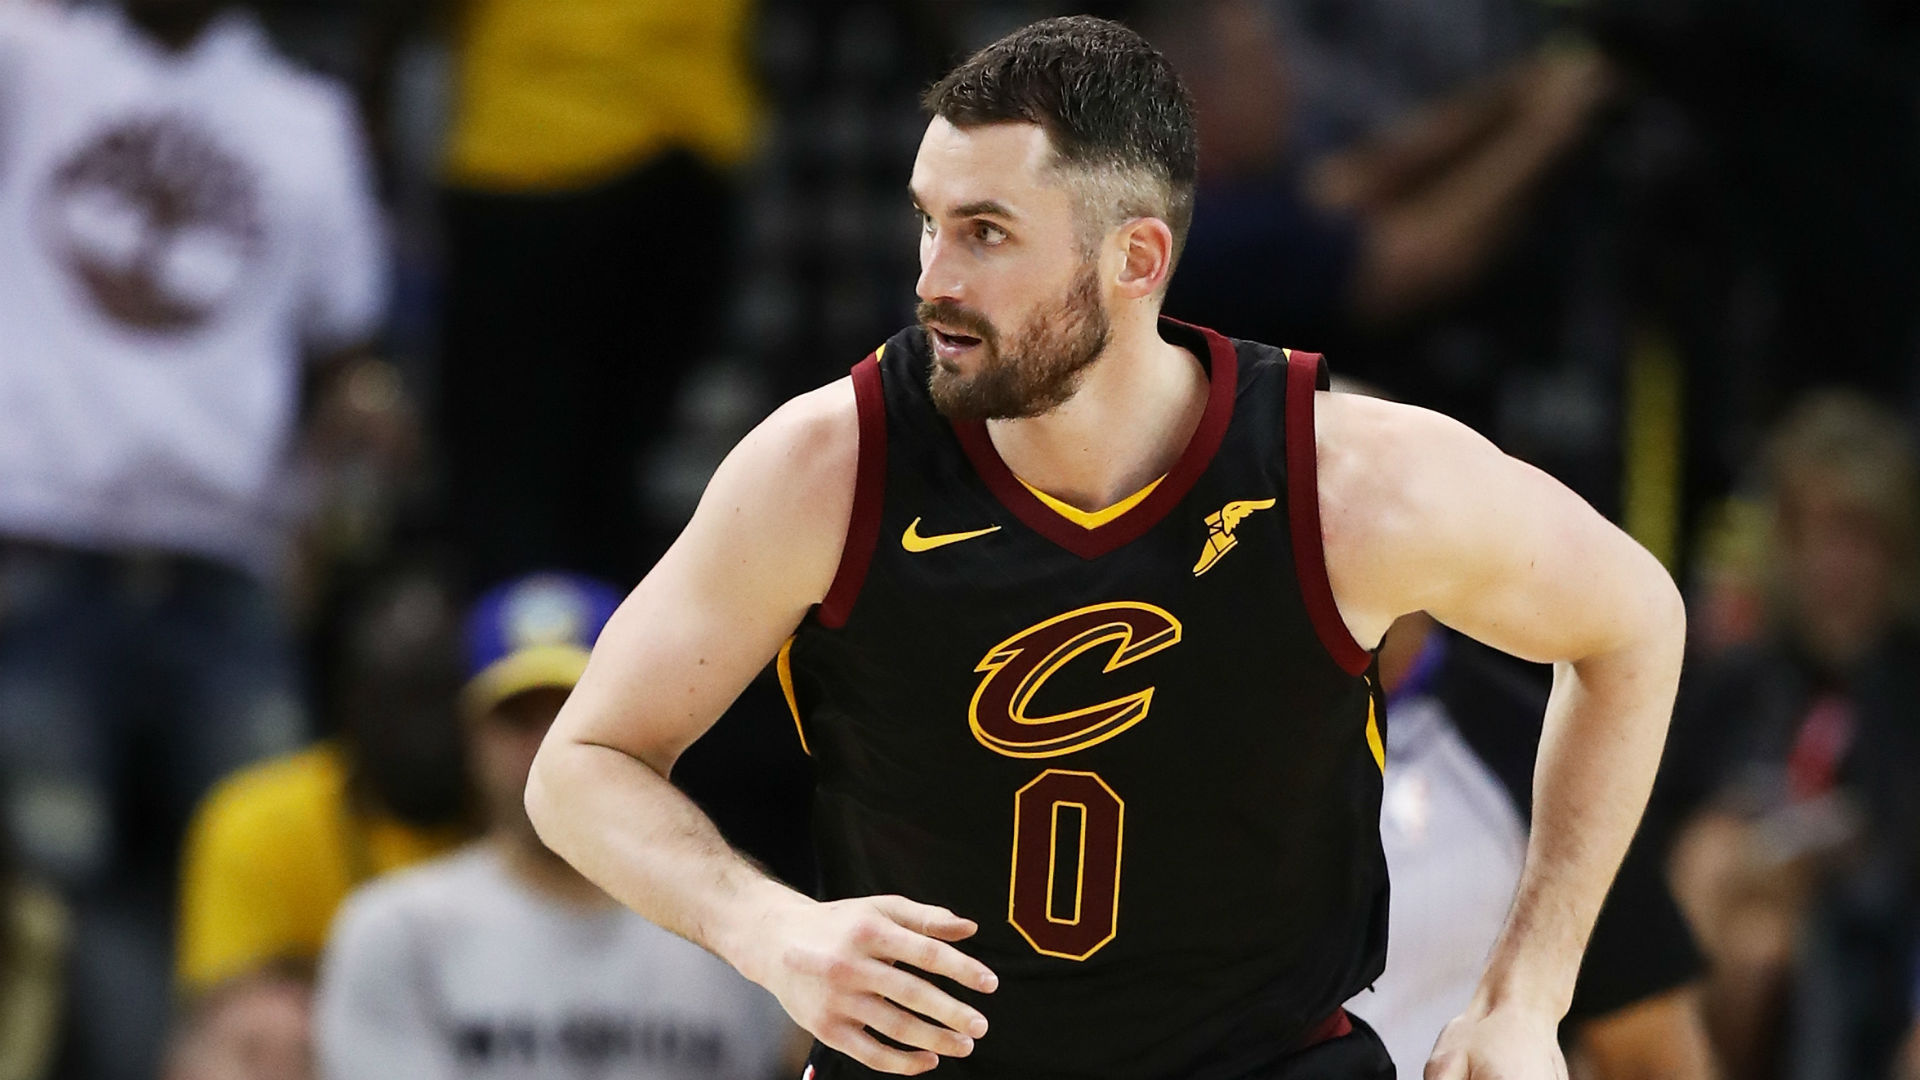 Nba Finals 2018 Cavs Kevin Love Will Not Be Suspended Sporting News